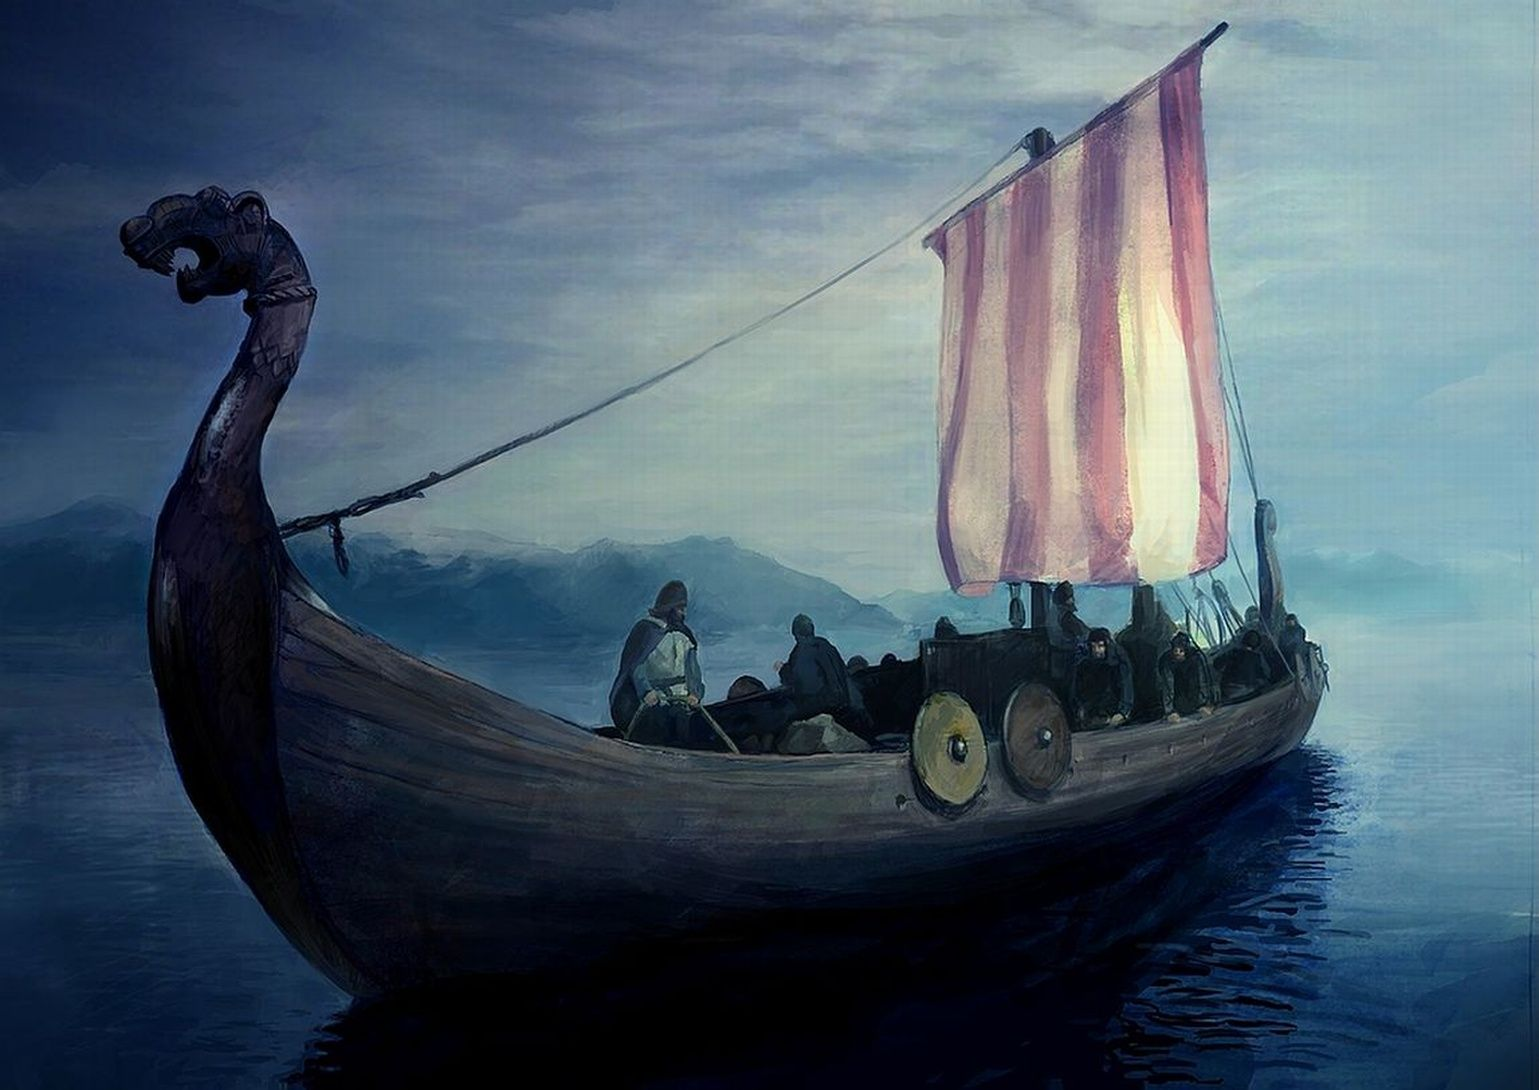 77ba34b1 The Vikings, or Norse, traveled to what is today known as North ...